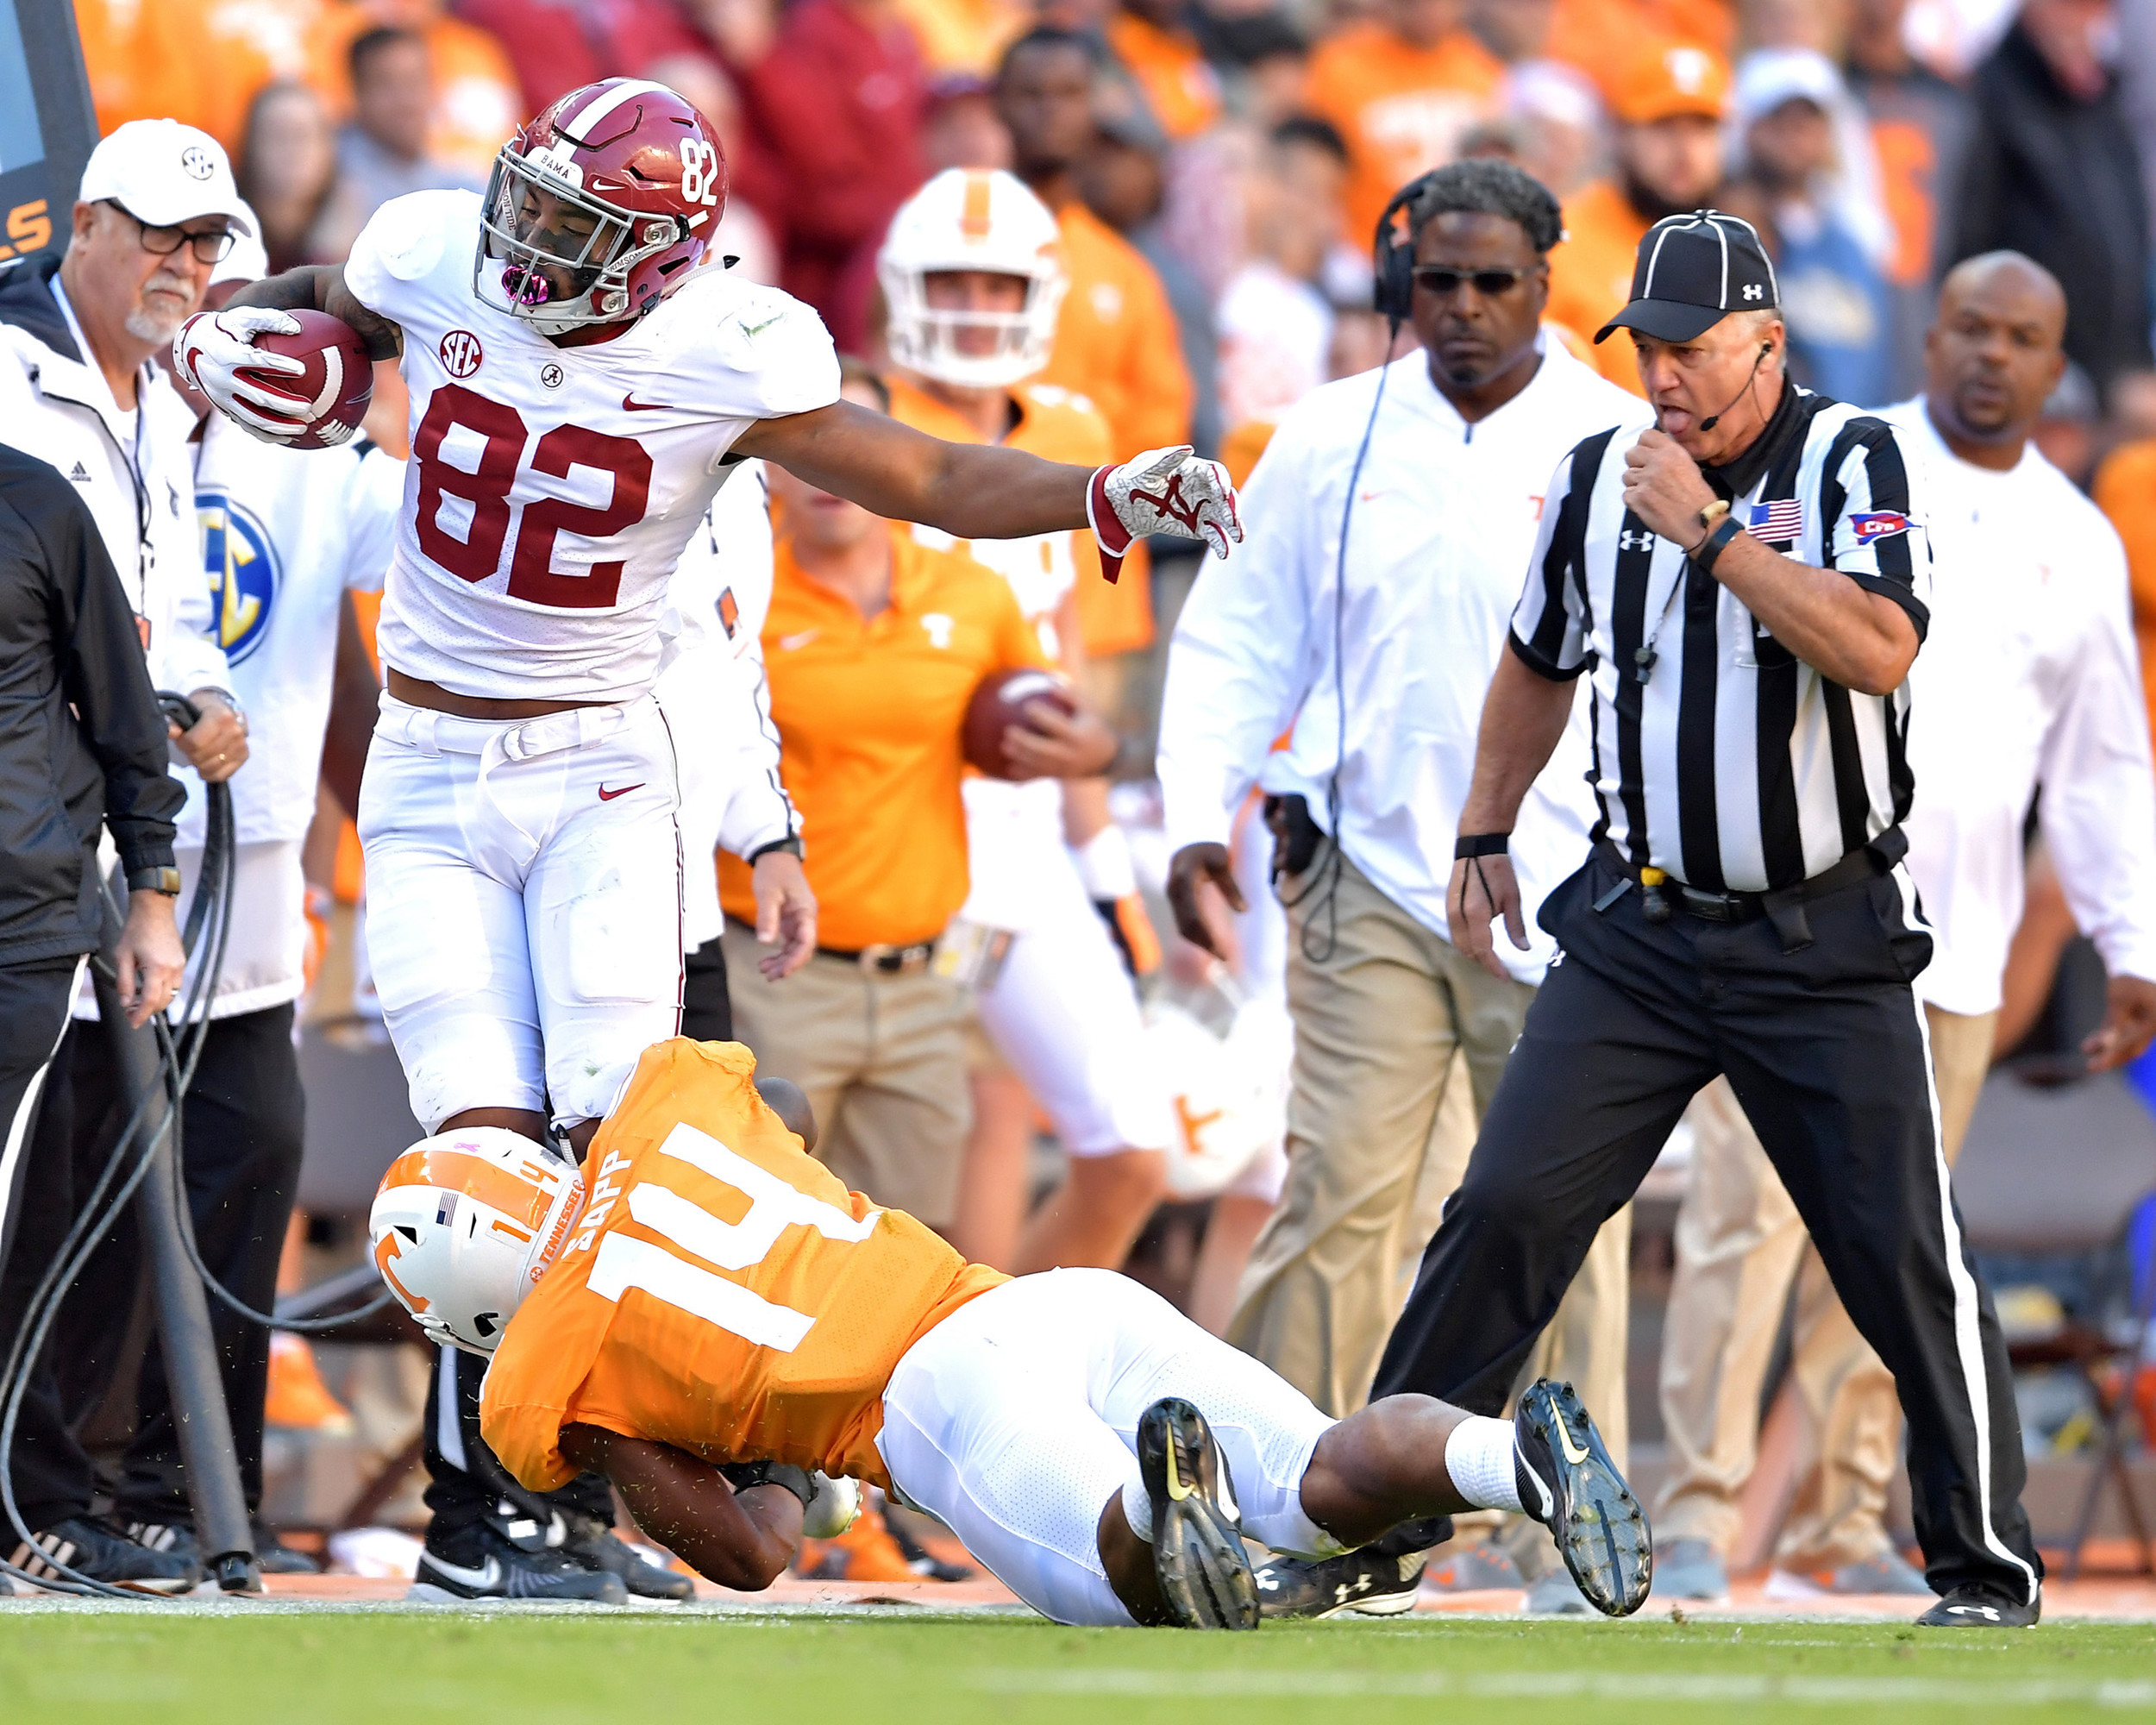 Alabama Crimson Tide tight end Irv Smith Jr. (82) is tackled by Tennessee Volunteers linebacker Quart'e Sapp (14) in the second quarter of the NCAA football game on Saturday, Oct. 20, 2018, at Neyland Stadium in Knoxville. Tenn. Alabama wins 58-21. (Photo by Lee Walls)